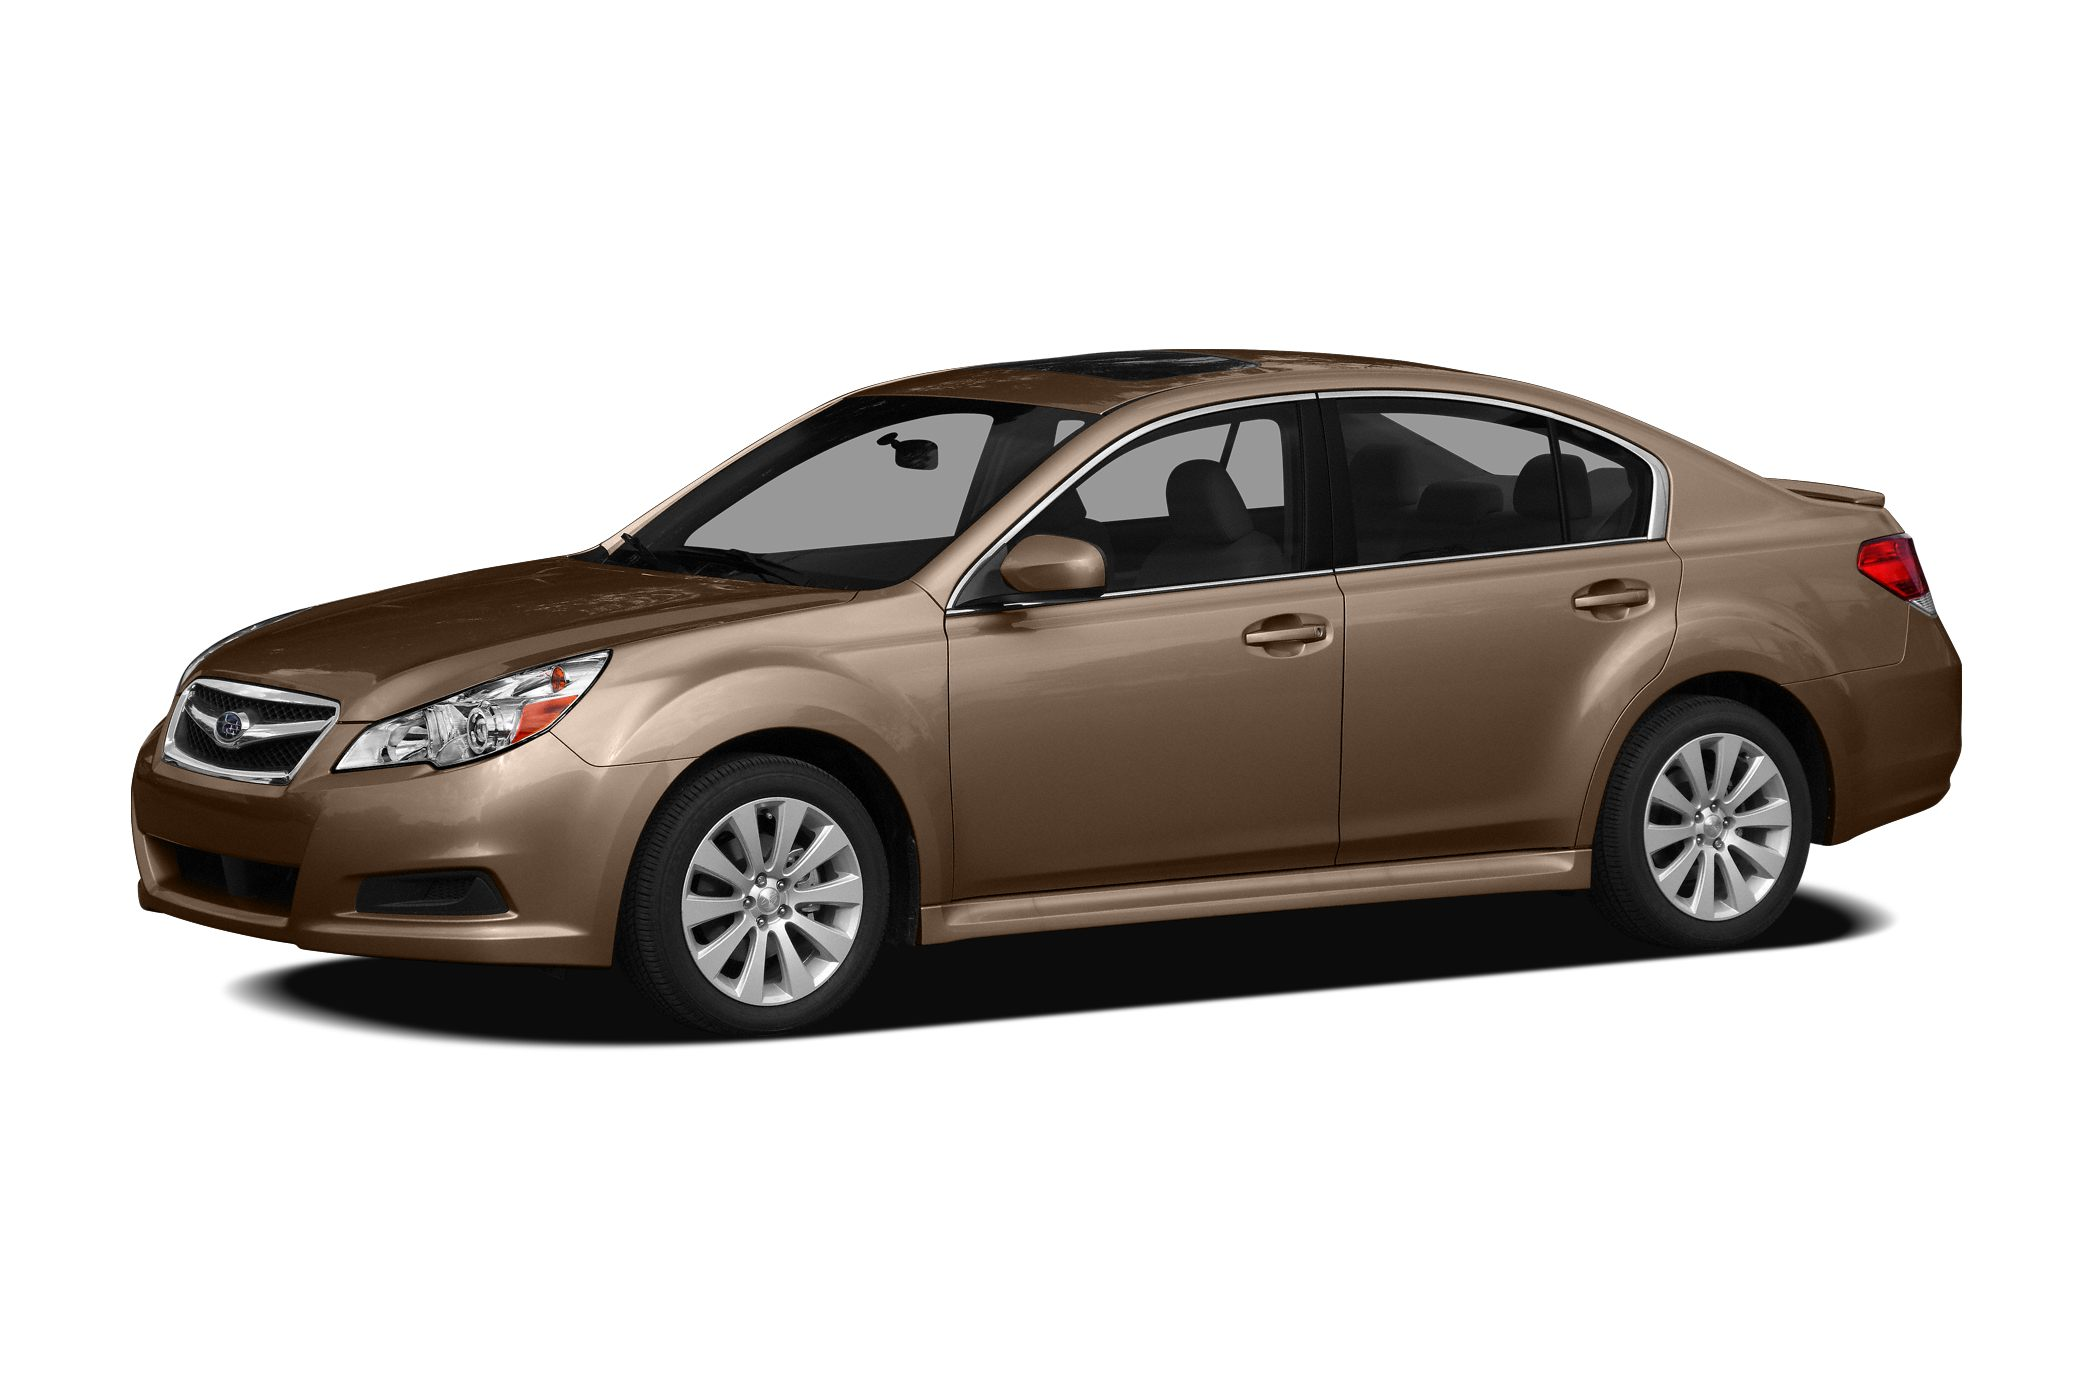 2011 Subaru Legacy 2.5 I Limited Sedan for sale in Lancaster for $15,998 with 93,047 miles.